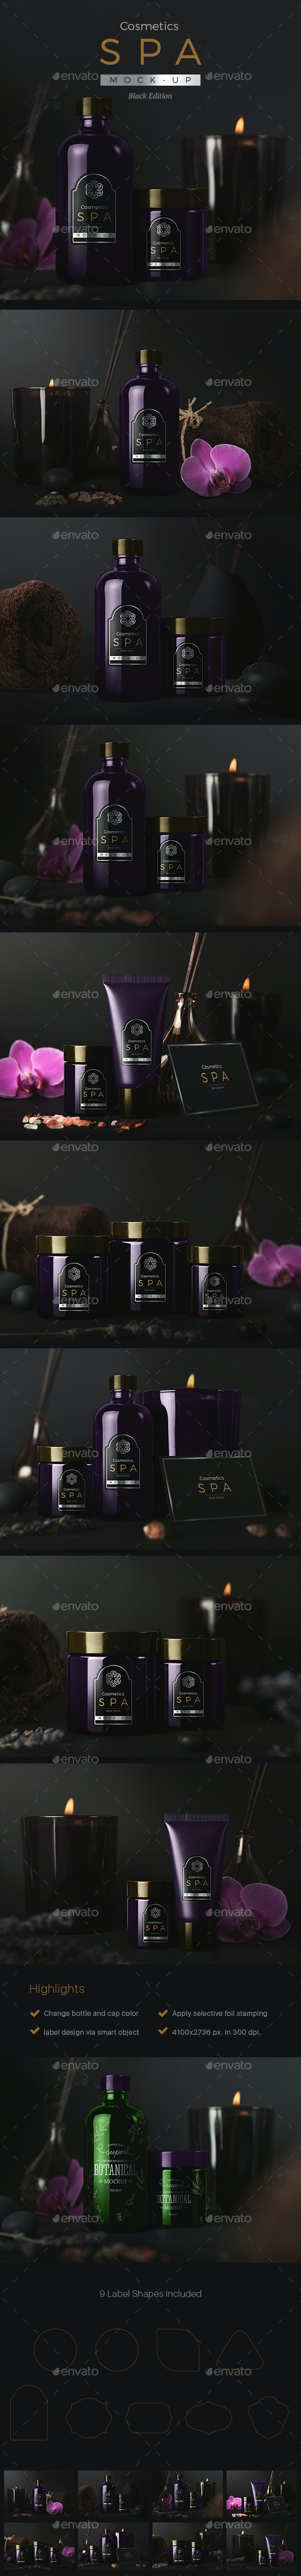 SPA Cosmetics Mock-Up V.2 - Beauty Packaging